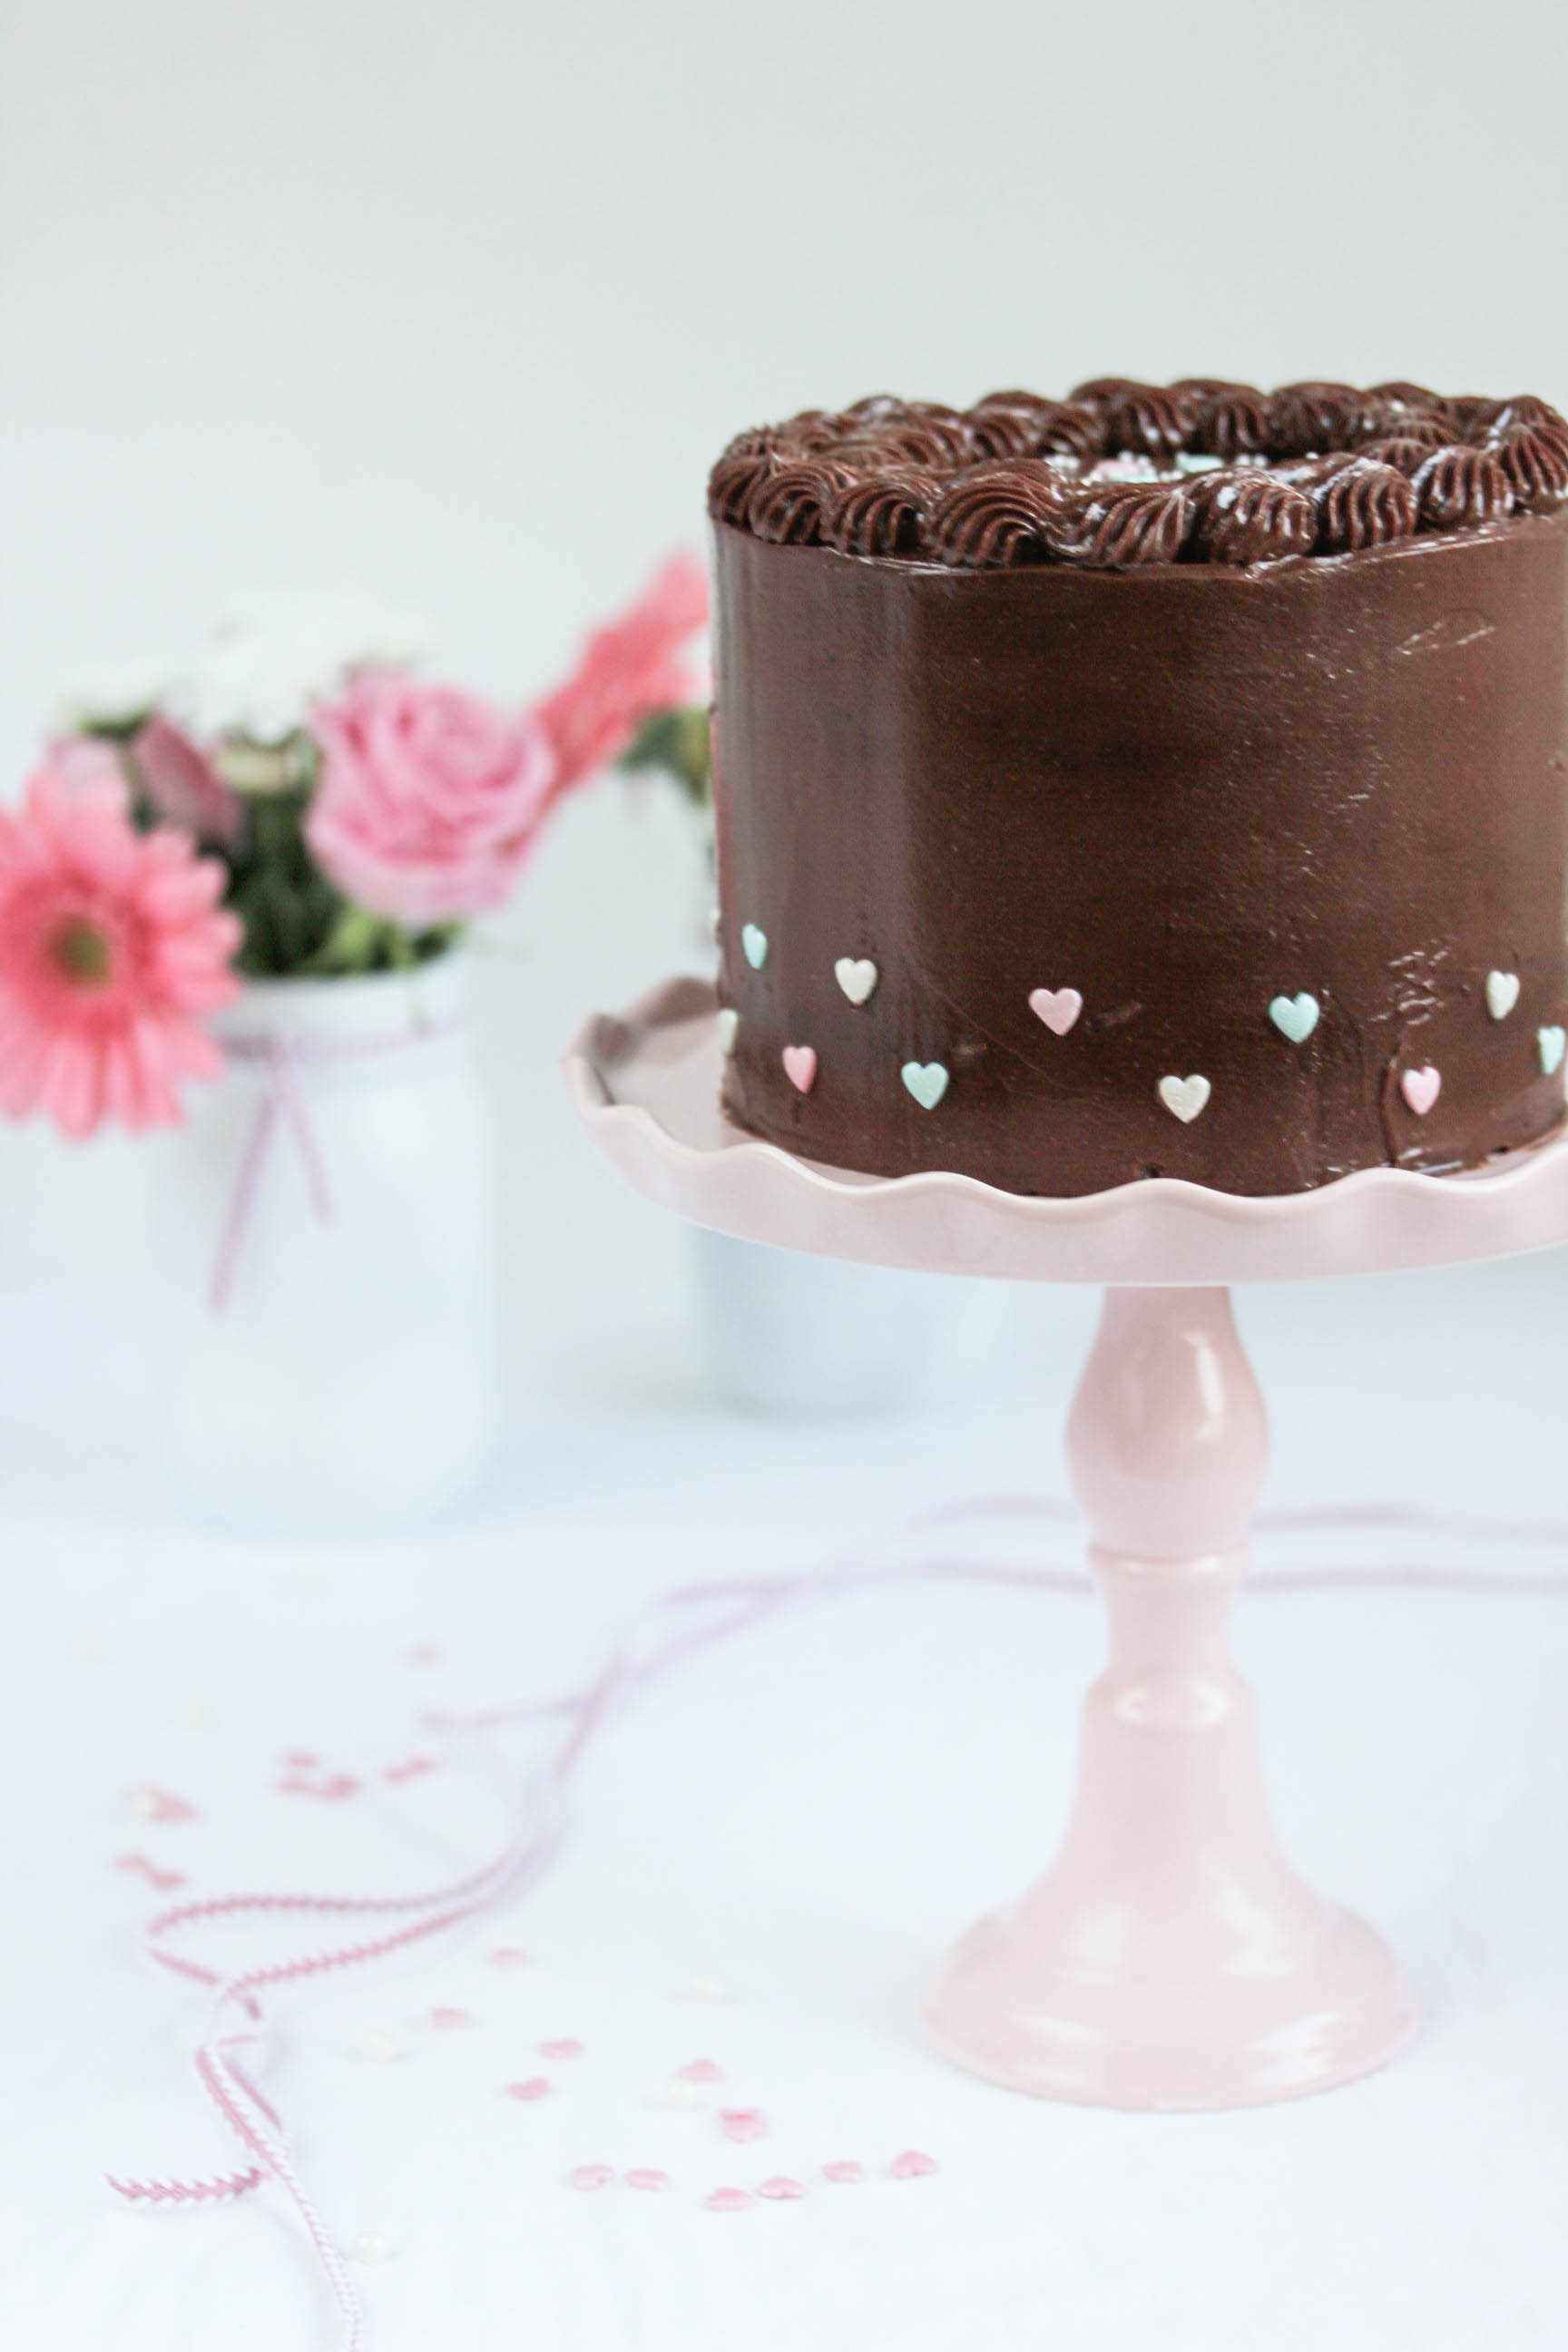 Nutella Birthday Cake-12